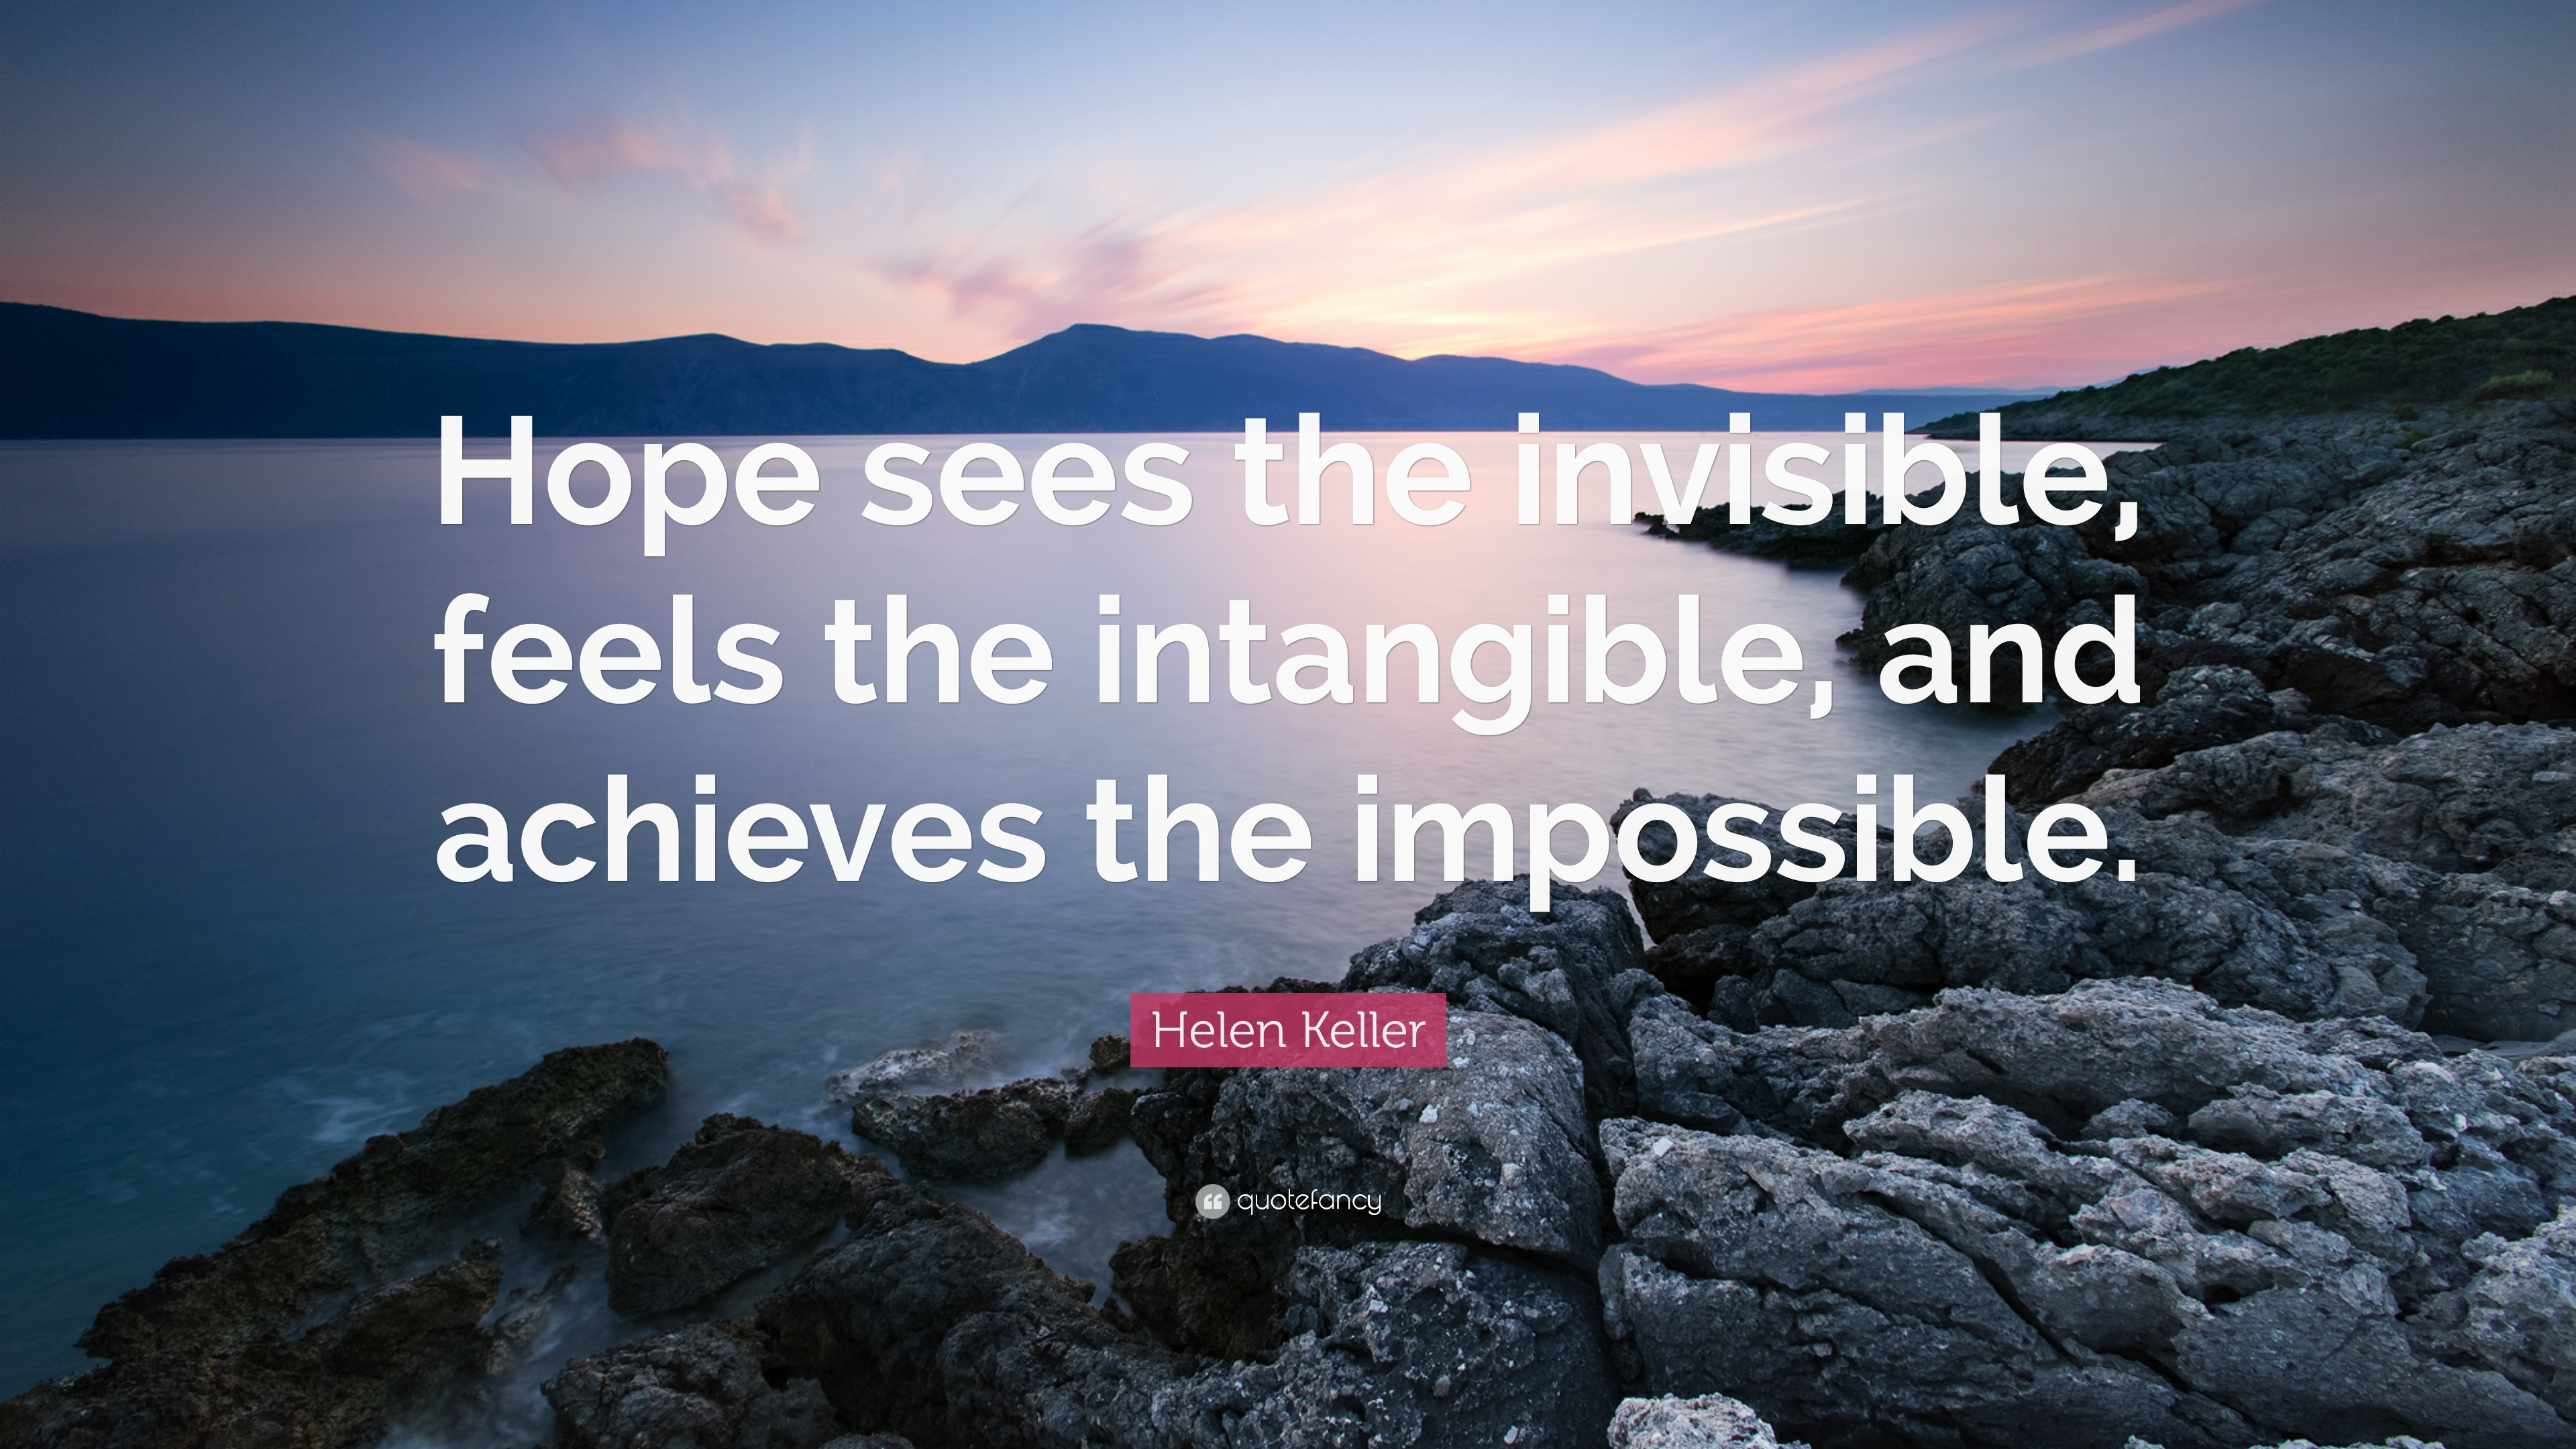 Socrates Wallpaper Quotes Helen Keller Quote Hope Sees The Invisible Feels The